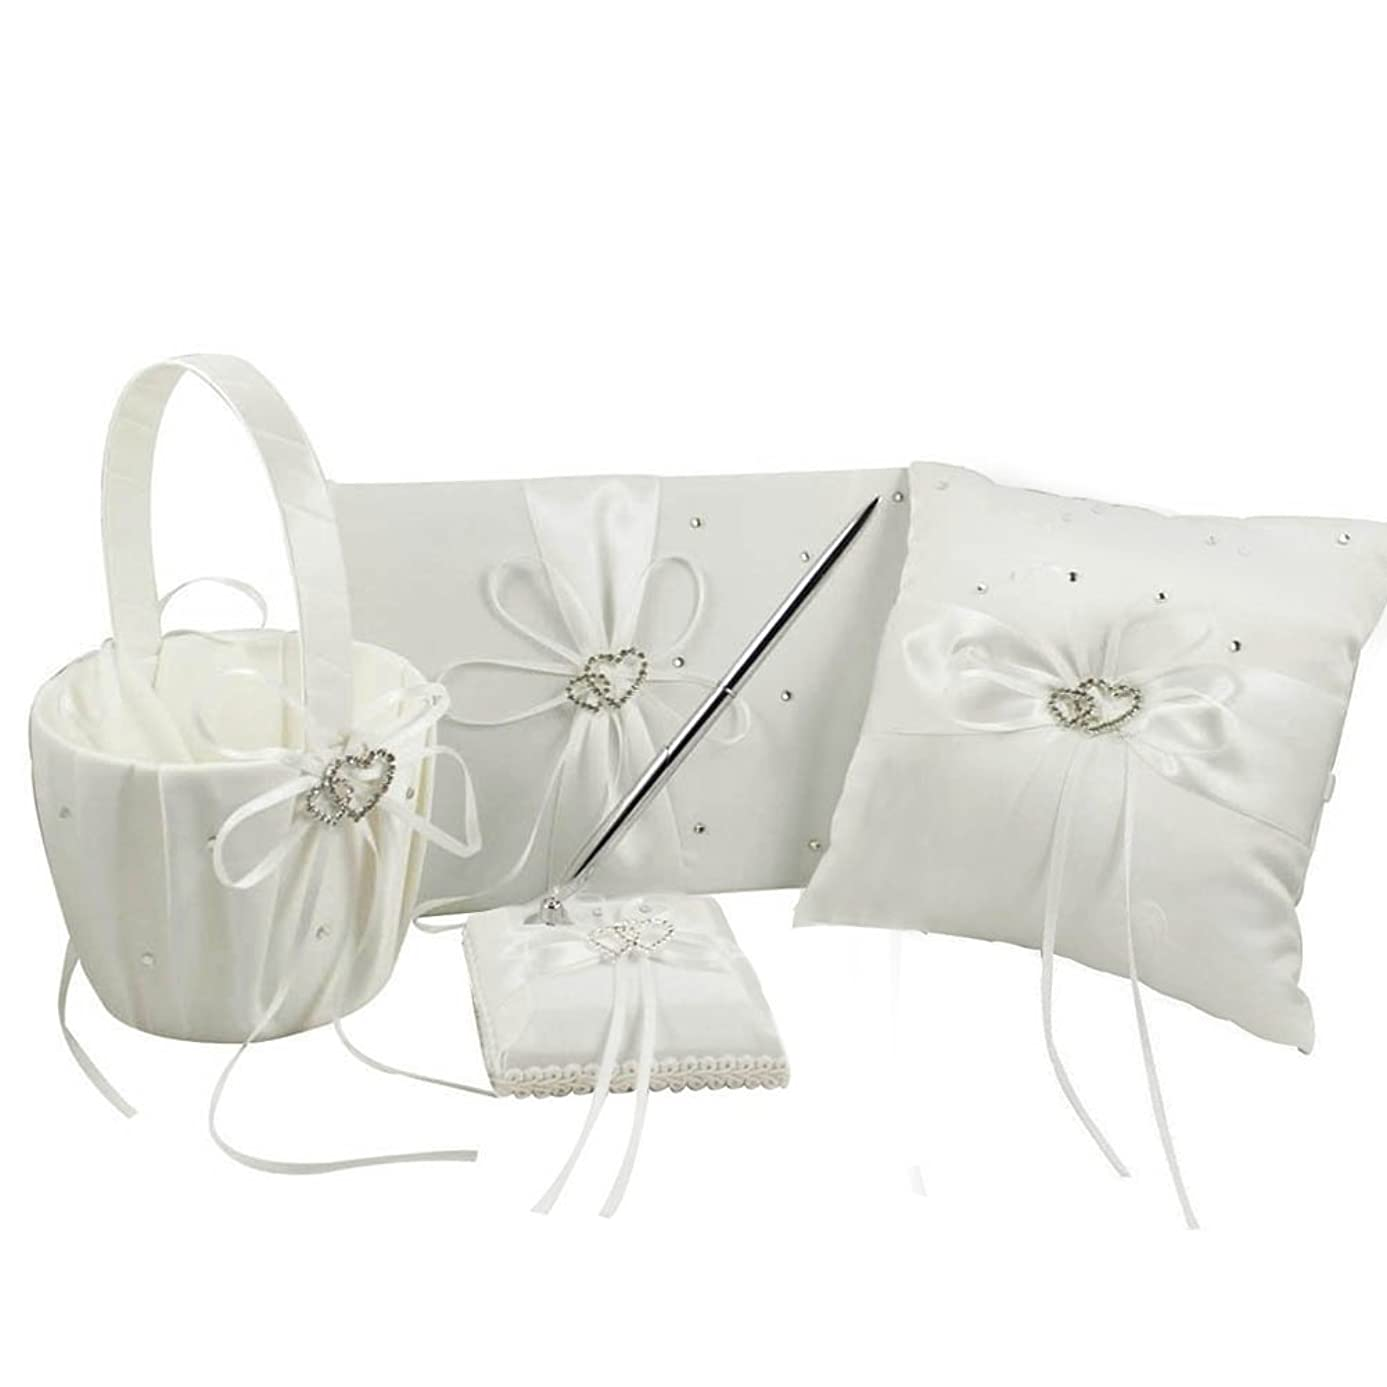 IvoryFour Wedding Accesorries Sets High Quality Wedding Guest Book +Pen Set +Flower Girl Basket + Ring Pillow, Double Hearts Rhinestone Elegant Wedding Ceremony Party Favor Sets